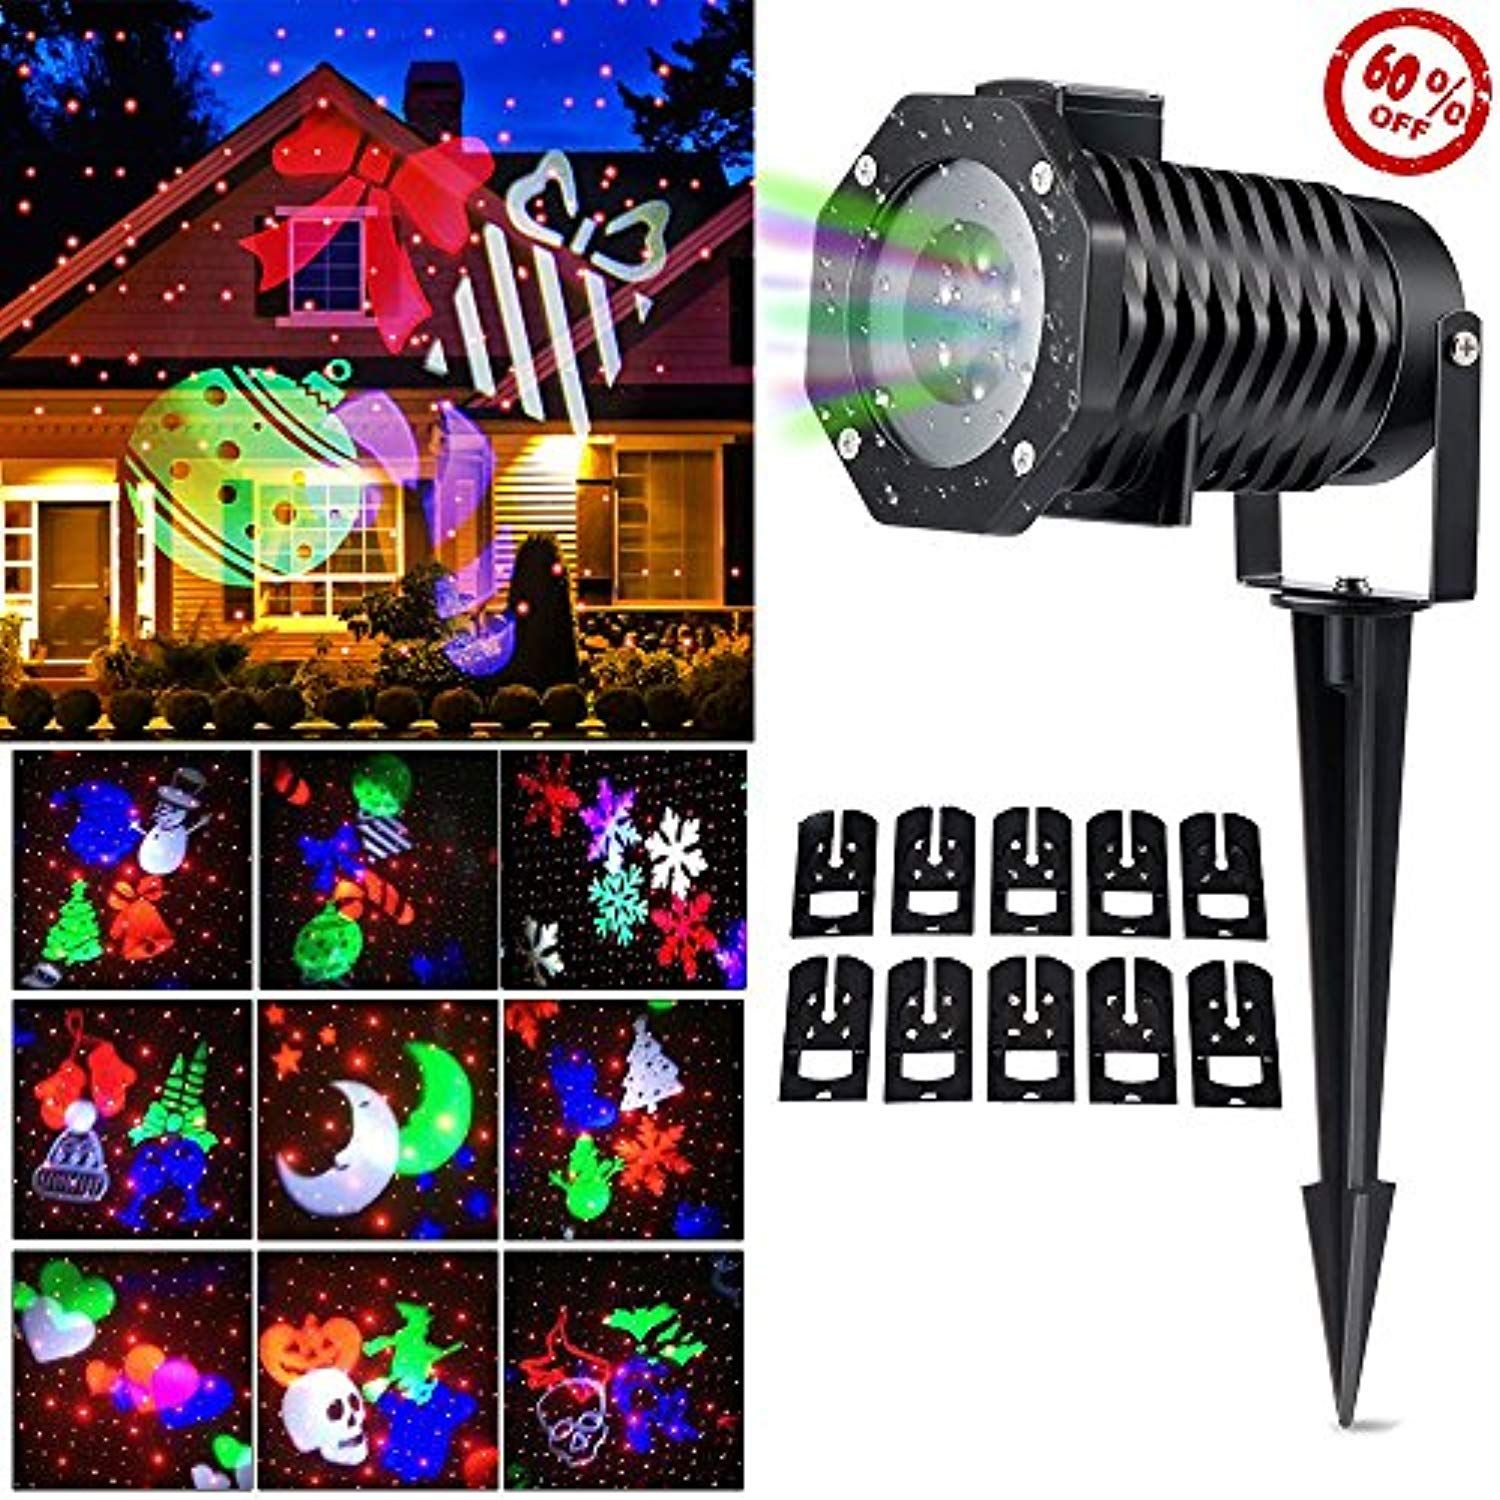 Cm Light Led Laser Projector Holiday Christmas Outdoor